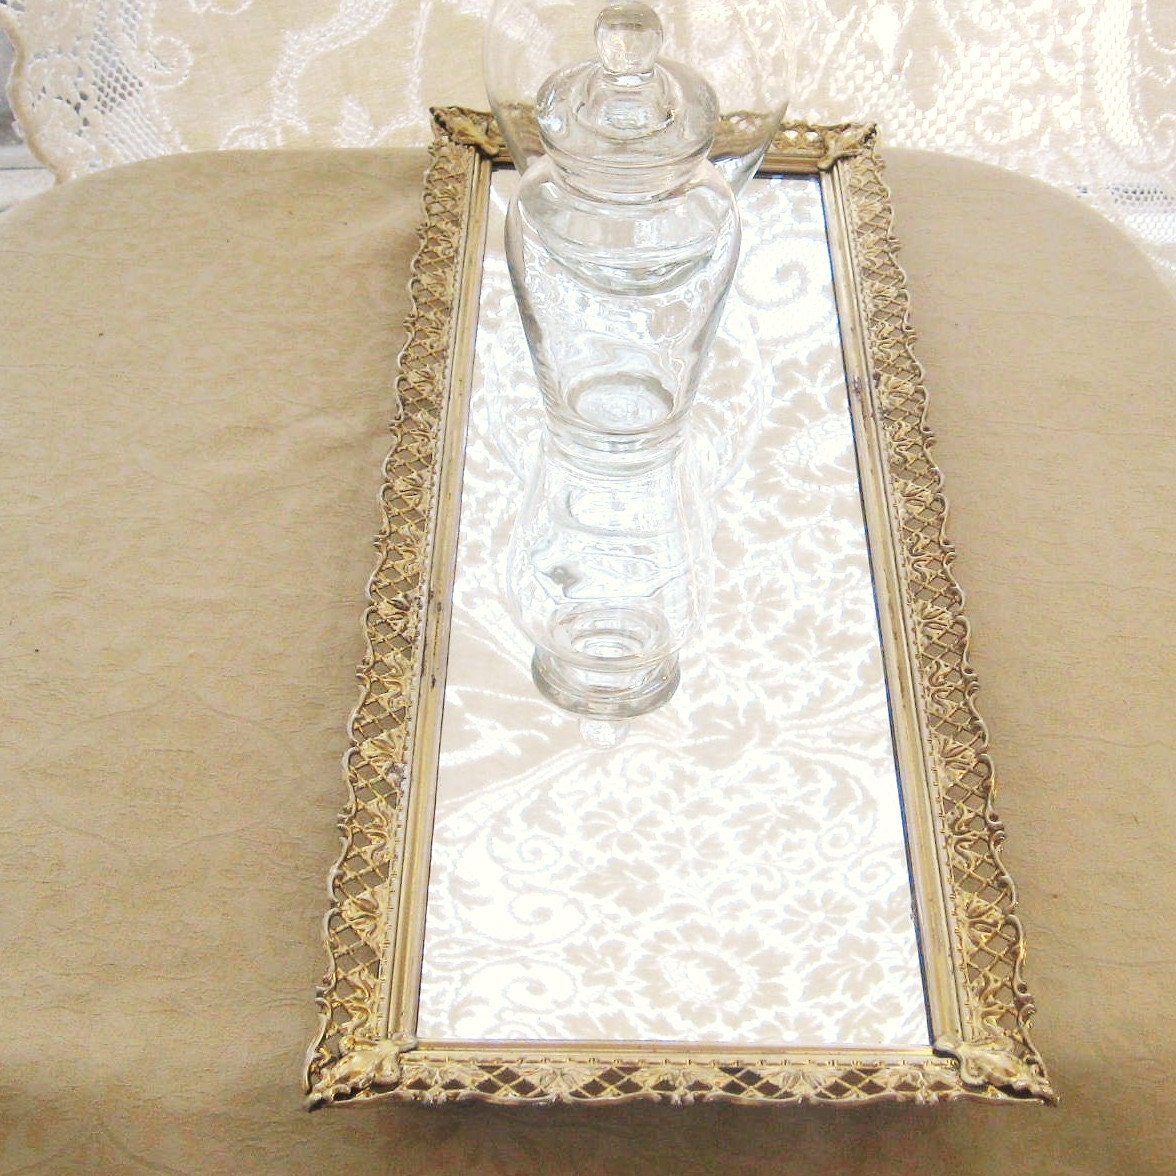 Mirrored vanity tray gold metal filigree long and narrow for Narrow wall mirror decorative